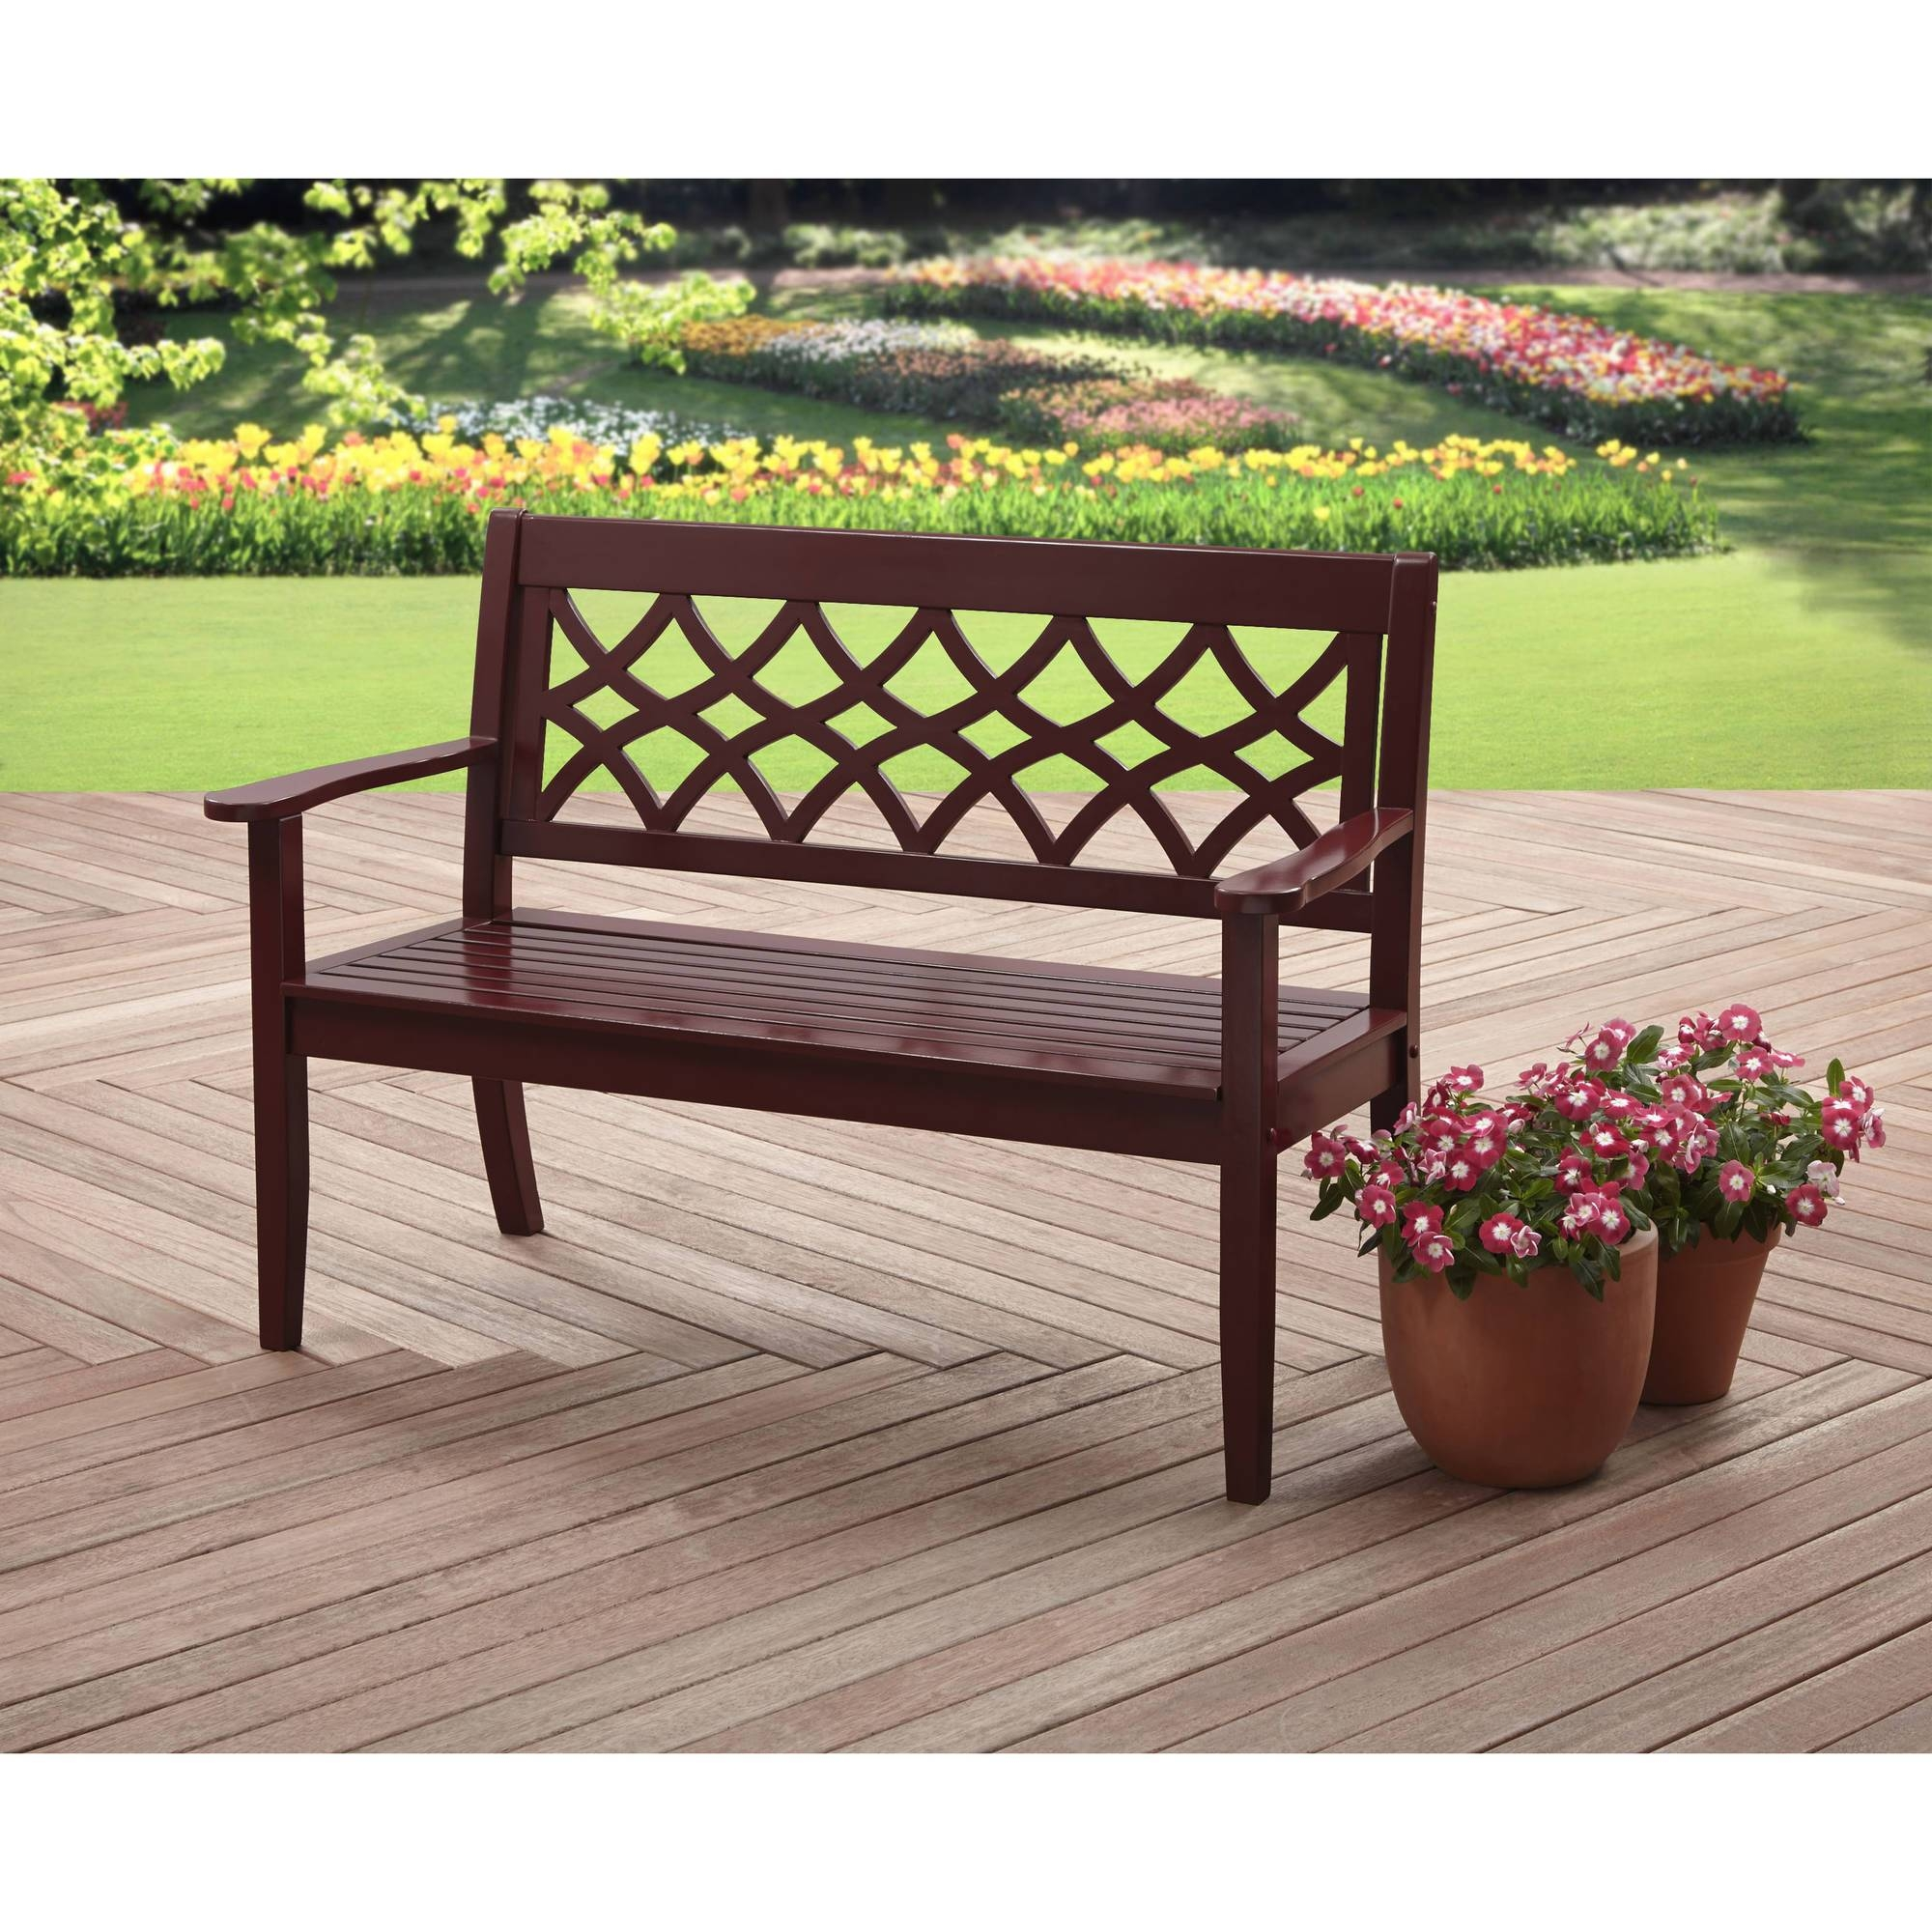 Better Homes And Gardens Azalea Ridge Outdoor Side Table, White in Wooden Garden Coffee Tables (Image 6 of 30)